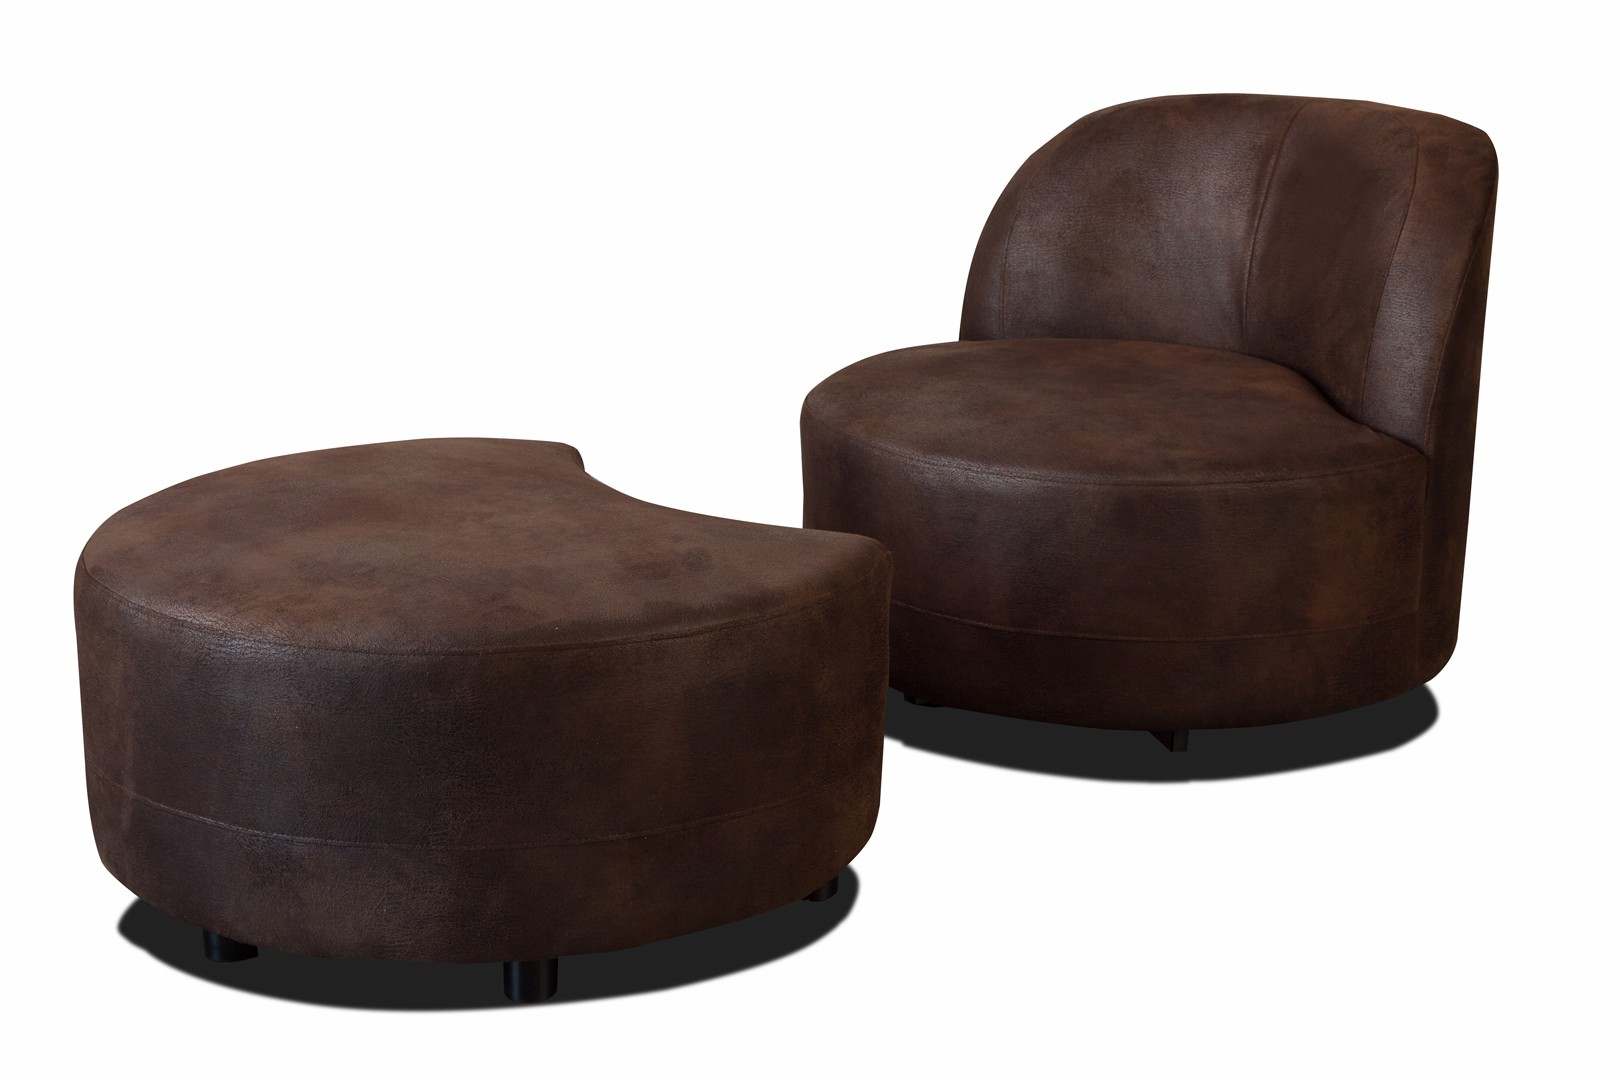 fauteuil pivotant rond id es de d coration int rieure. Black Bedroom Furniture Sets. Home Design Ideas